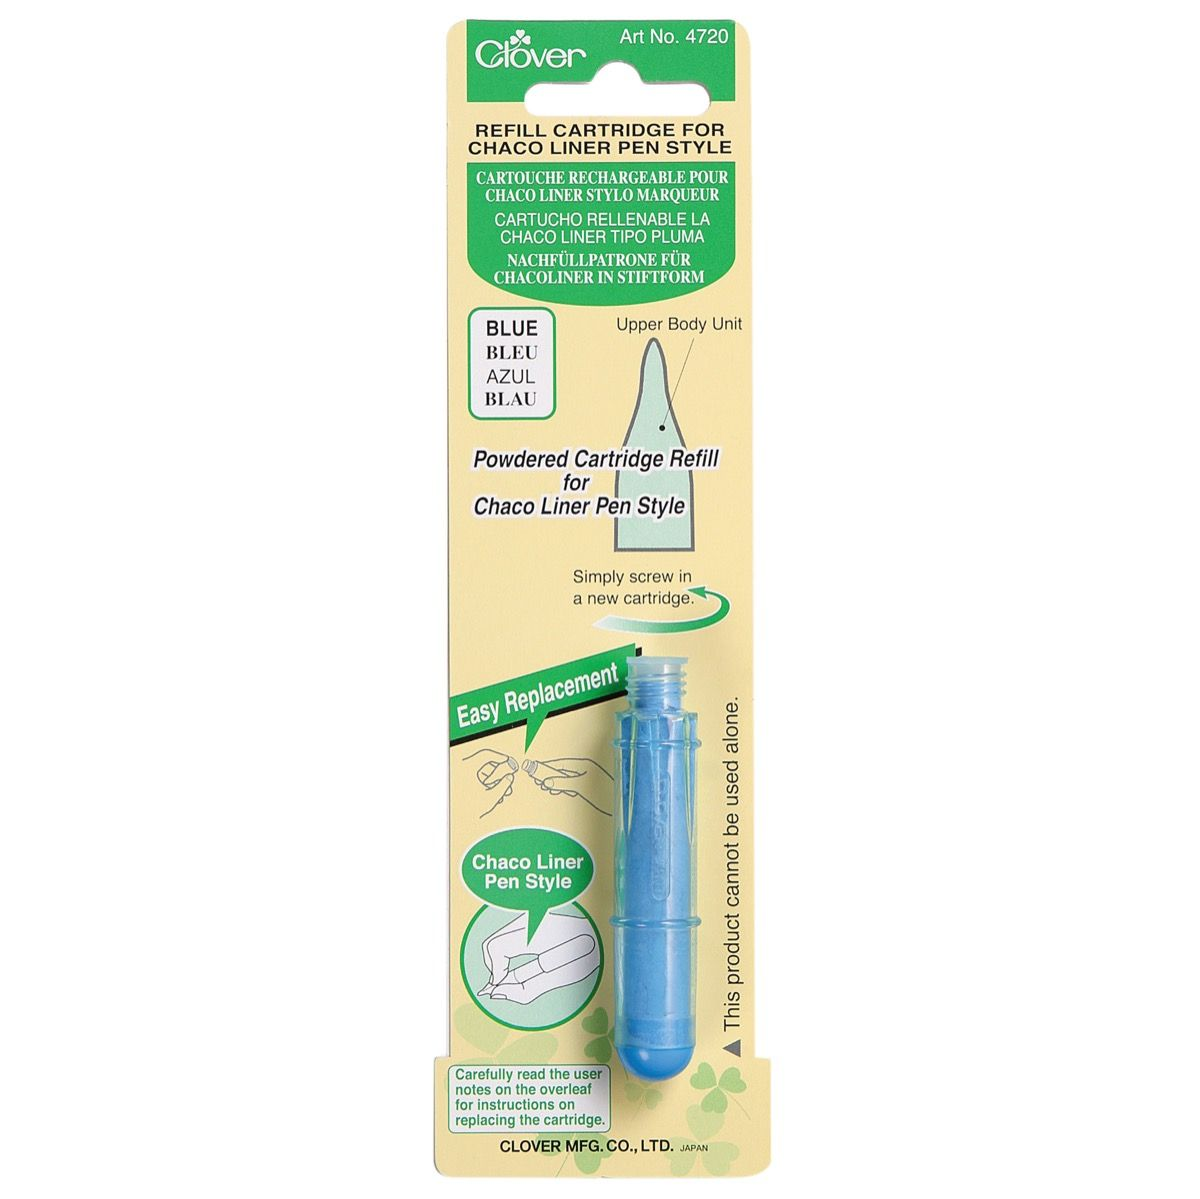 Clover Chaco Liner Pen Style Refill Cartridge - Blue